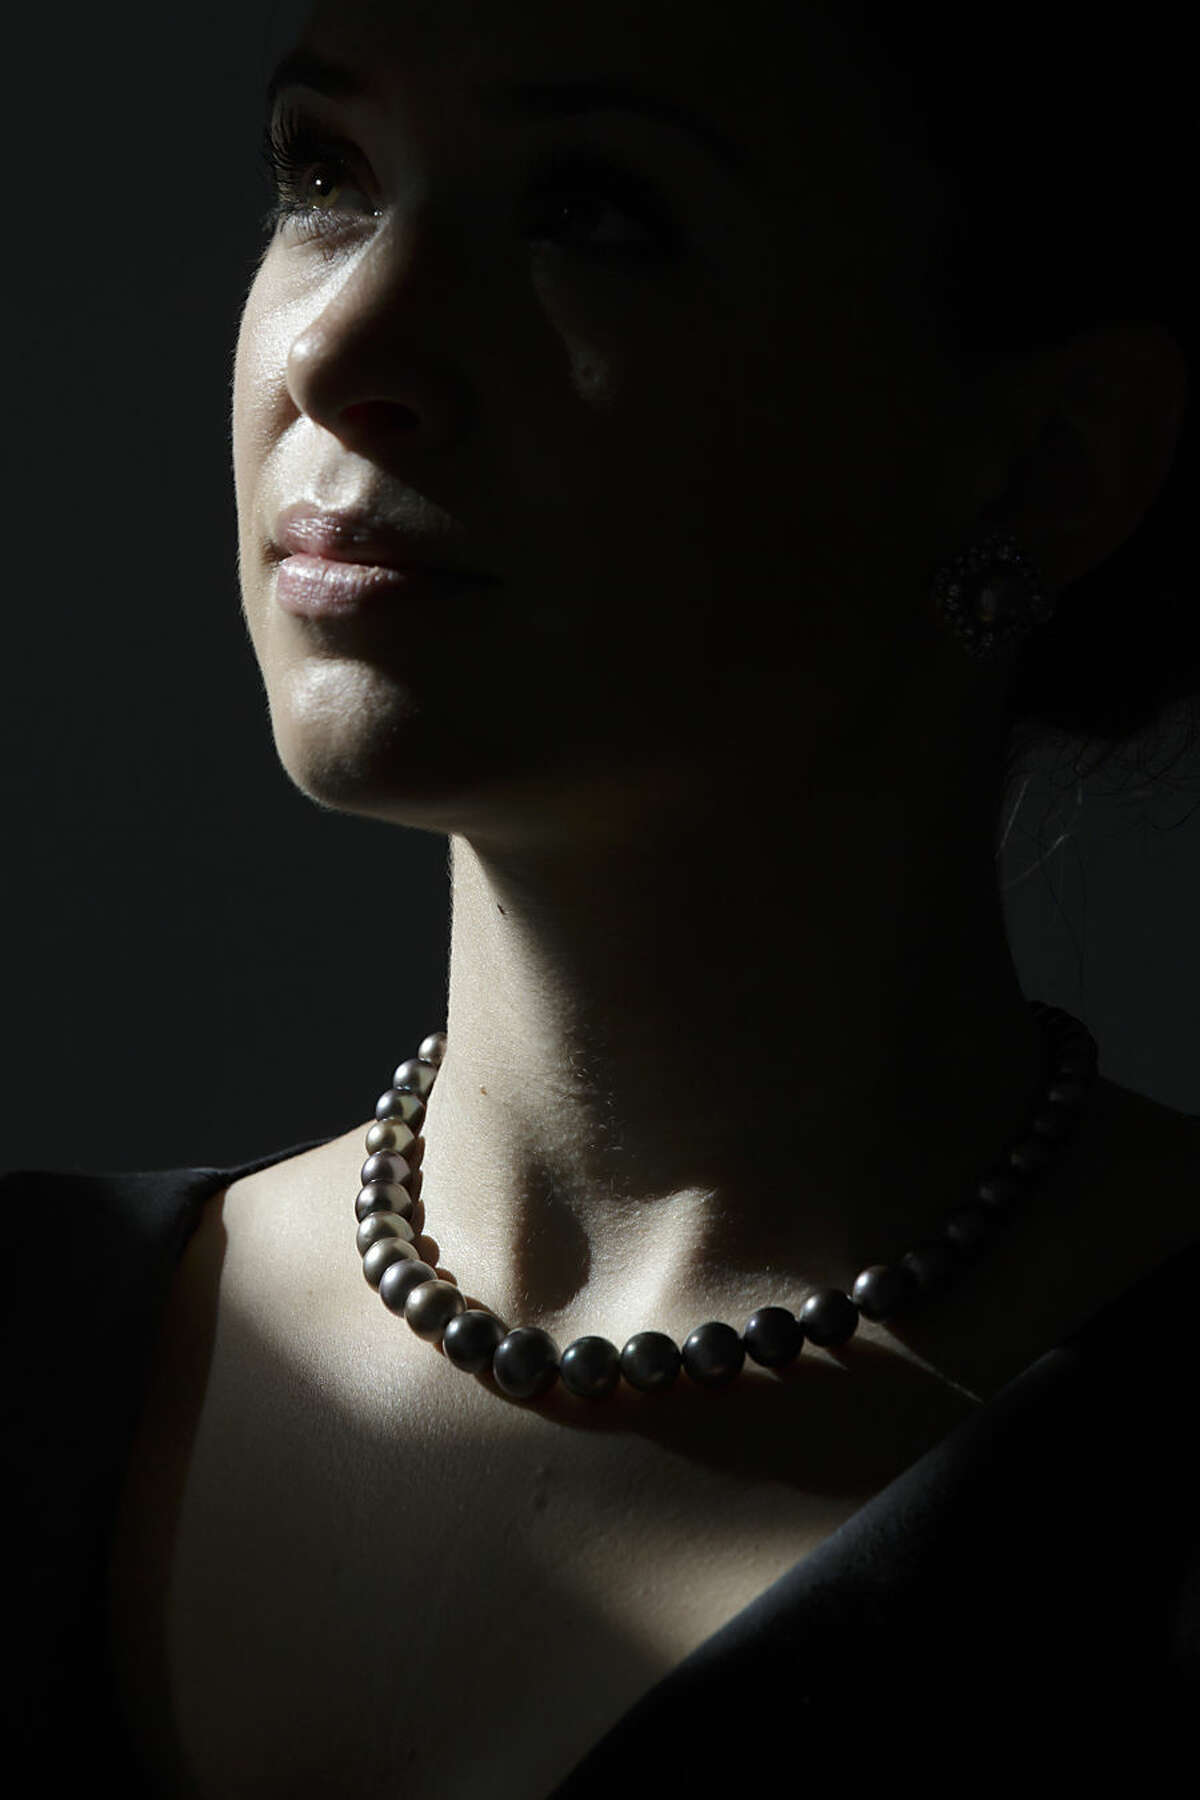 A member of Sotheby's staff poses for pictures with the Cowdray Pearl's, a necklace, strung and mounted by Cartier, of 42 grey saltwater pearls, at the Sotheby's auction house in London, Monday, Sept. 28, 2015. The necklace is due to be auctioned by Sotheby's Hong Kong at the Hong Kong Convention and Exhibition Centre in the Magnificent Jewels and Jadeite Autumn Sale on Oct. 7, and is estimated to fetch up to $7 million (4.6 million pounds) (AP Photo/Tim Ireland)